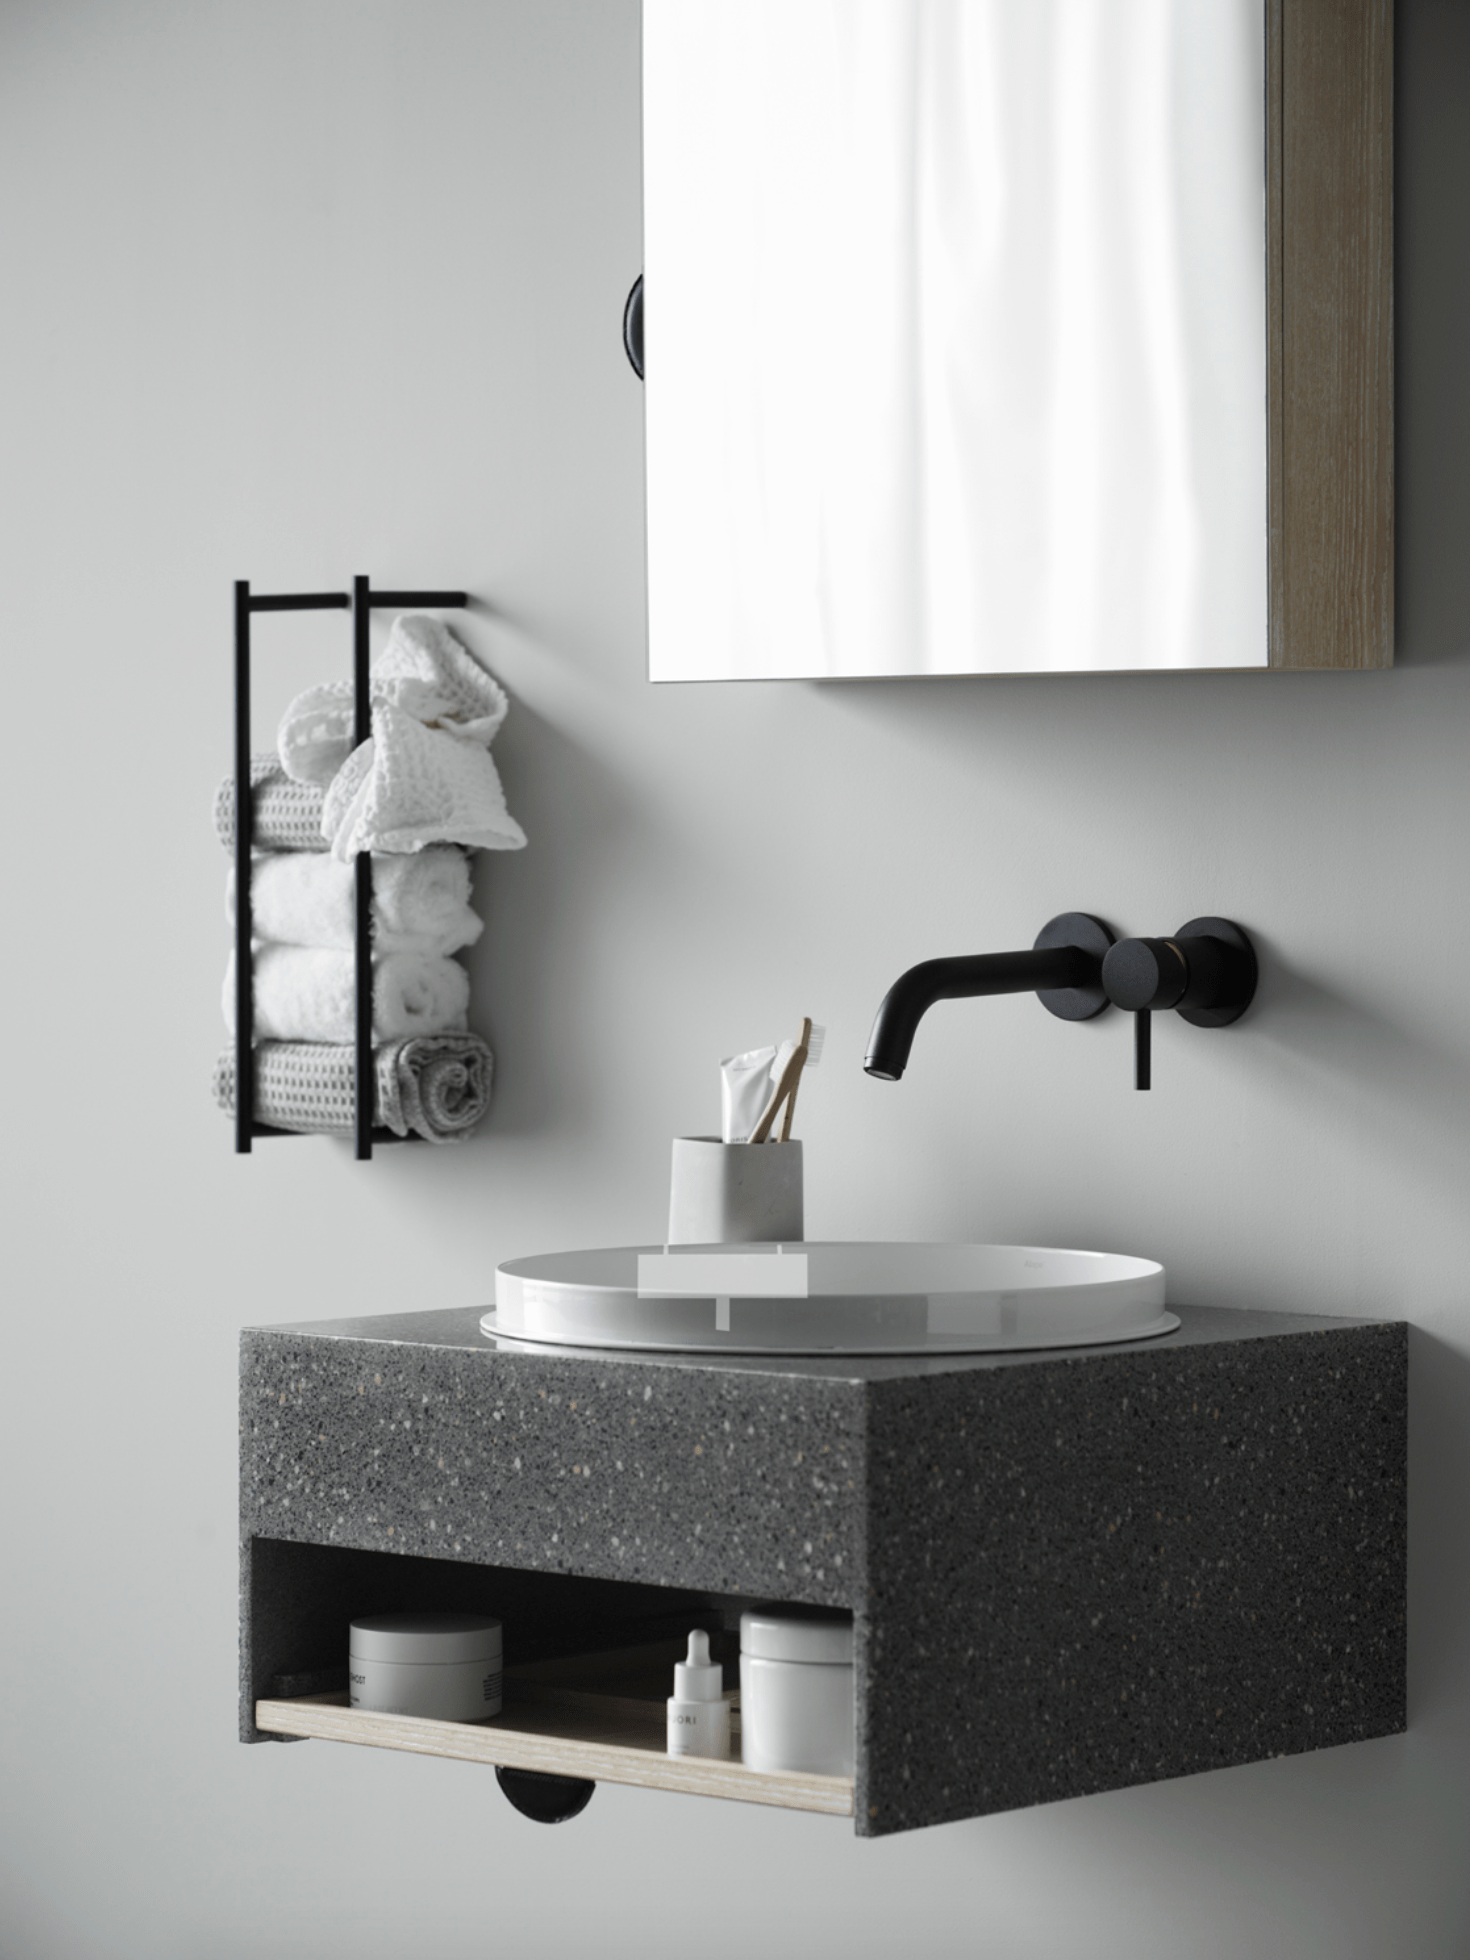 Lagom Bath | Blog, Bath and Bathroom taps